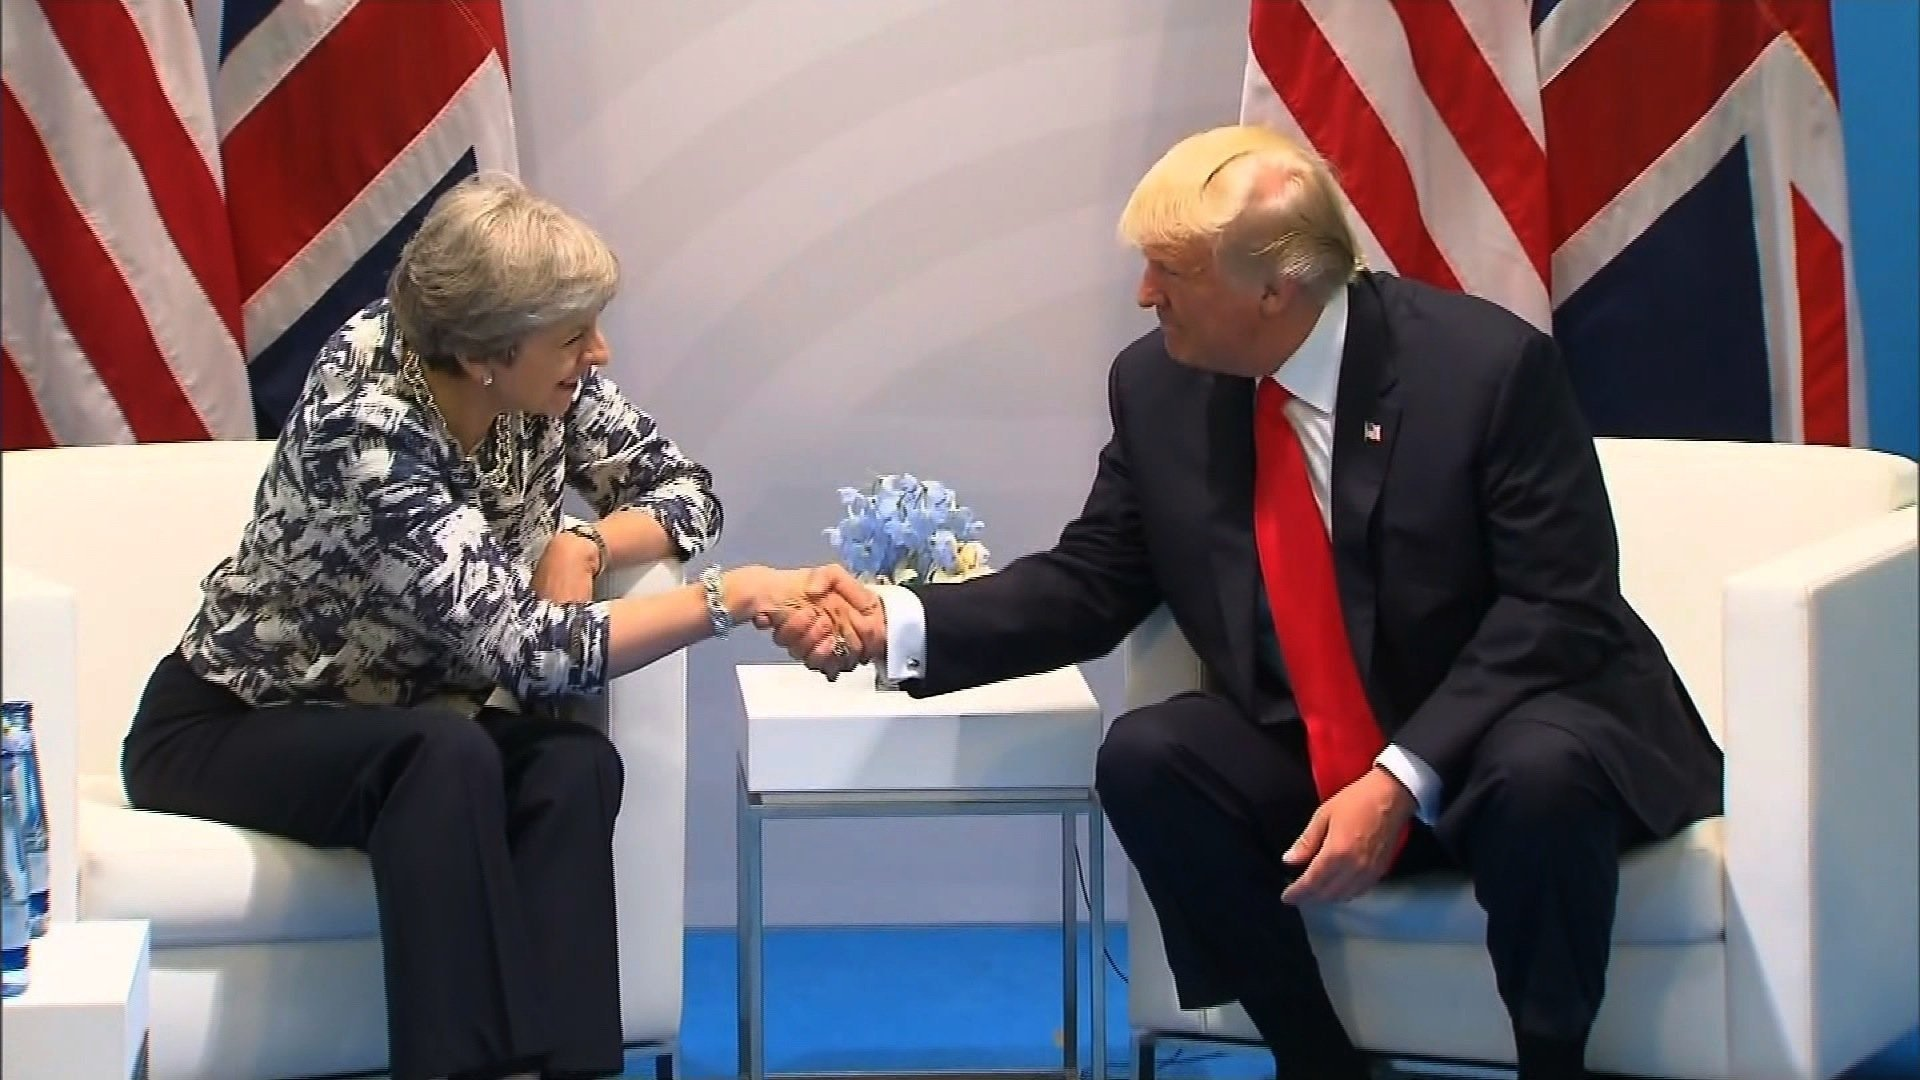 President Donald Trump met with British Prime Minister Theresa May at the G20 meeting in Hamburg, Germany, confirming that the two countries are currently working on a trade agreement.